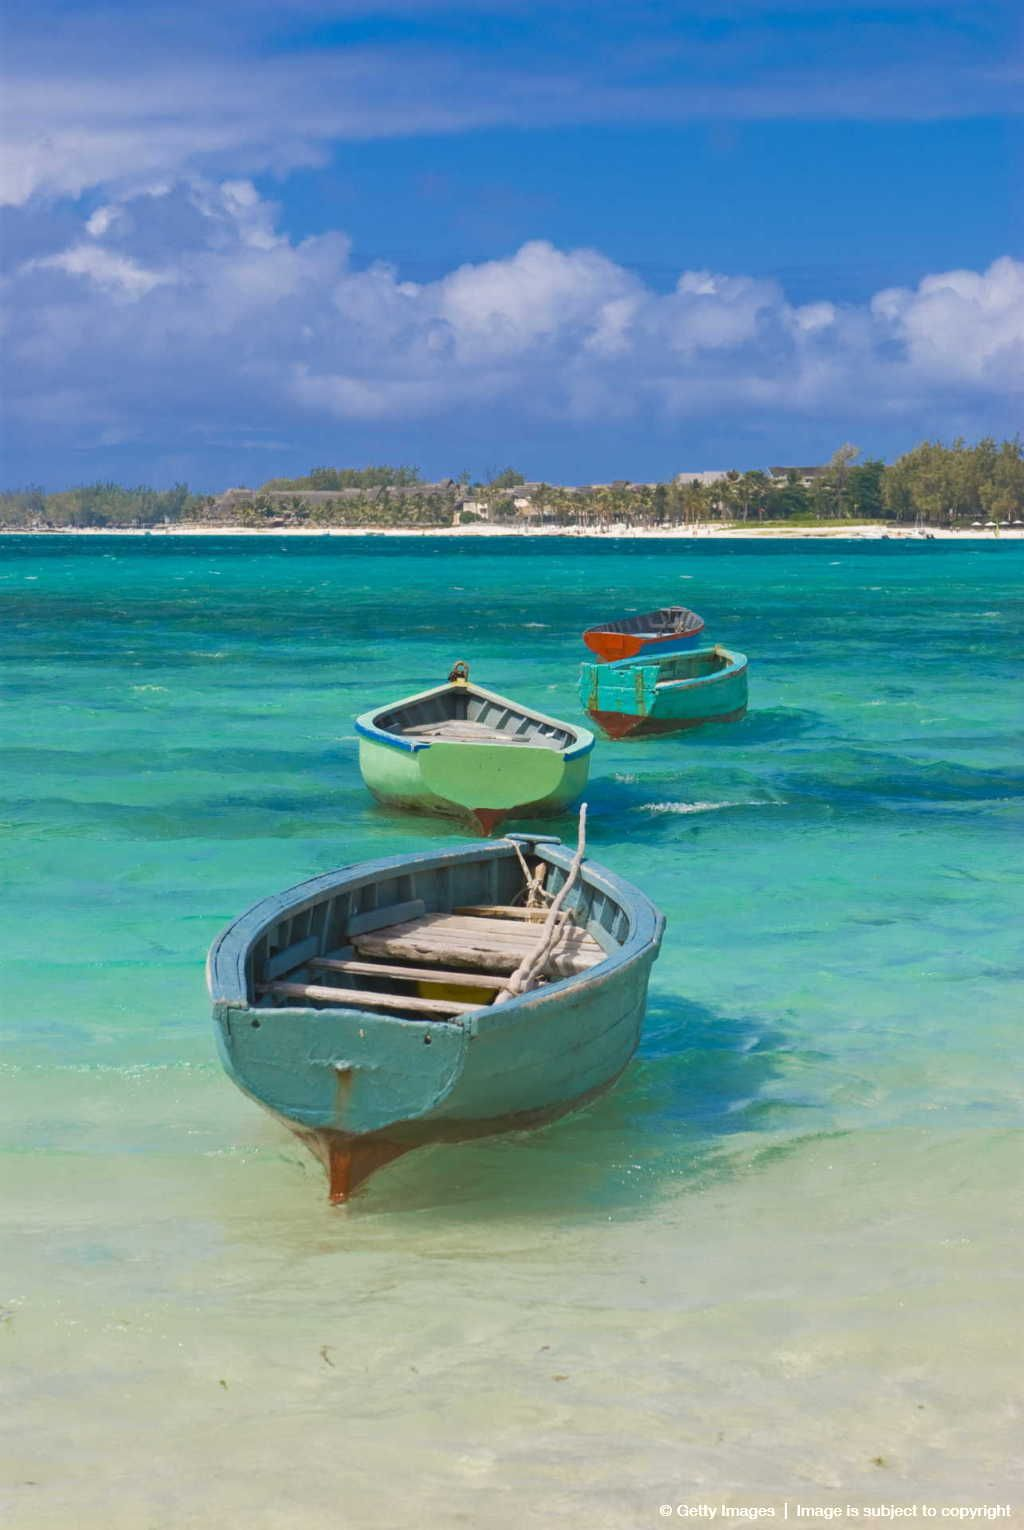 Small Fishing Boats in the Turquoise Sea, Mauritius ...